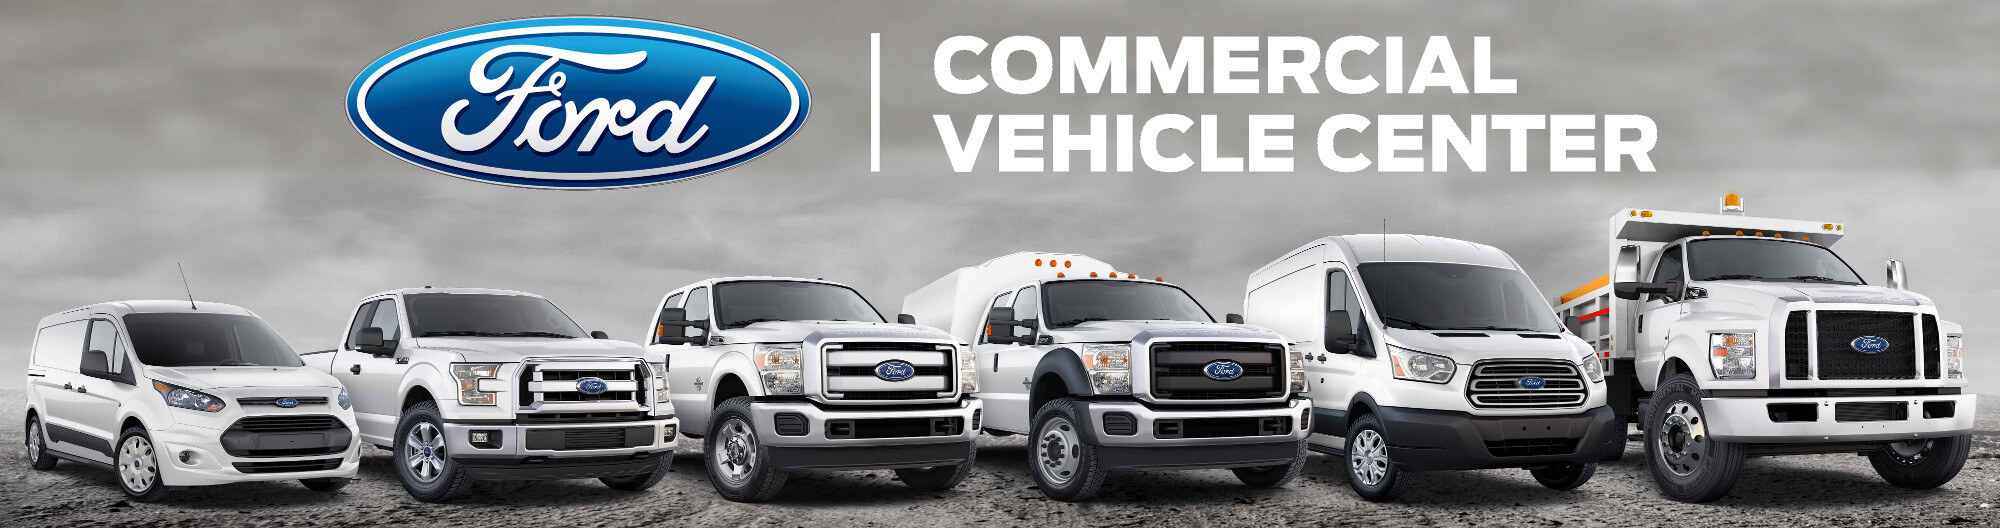 714c1749b8 Commercial Vehicle Center